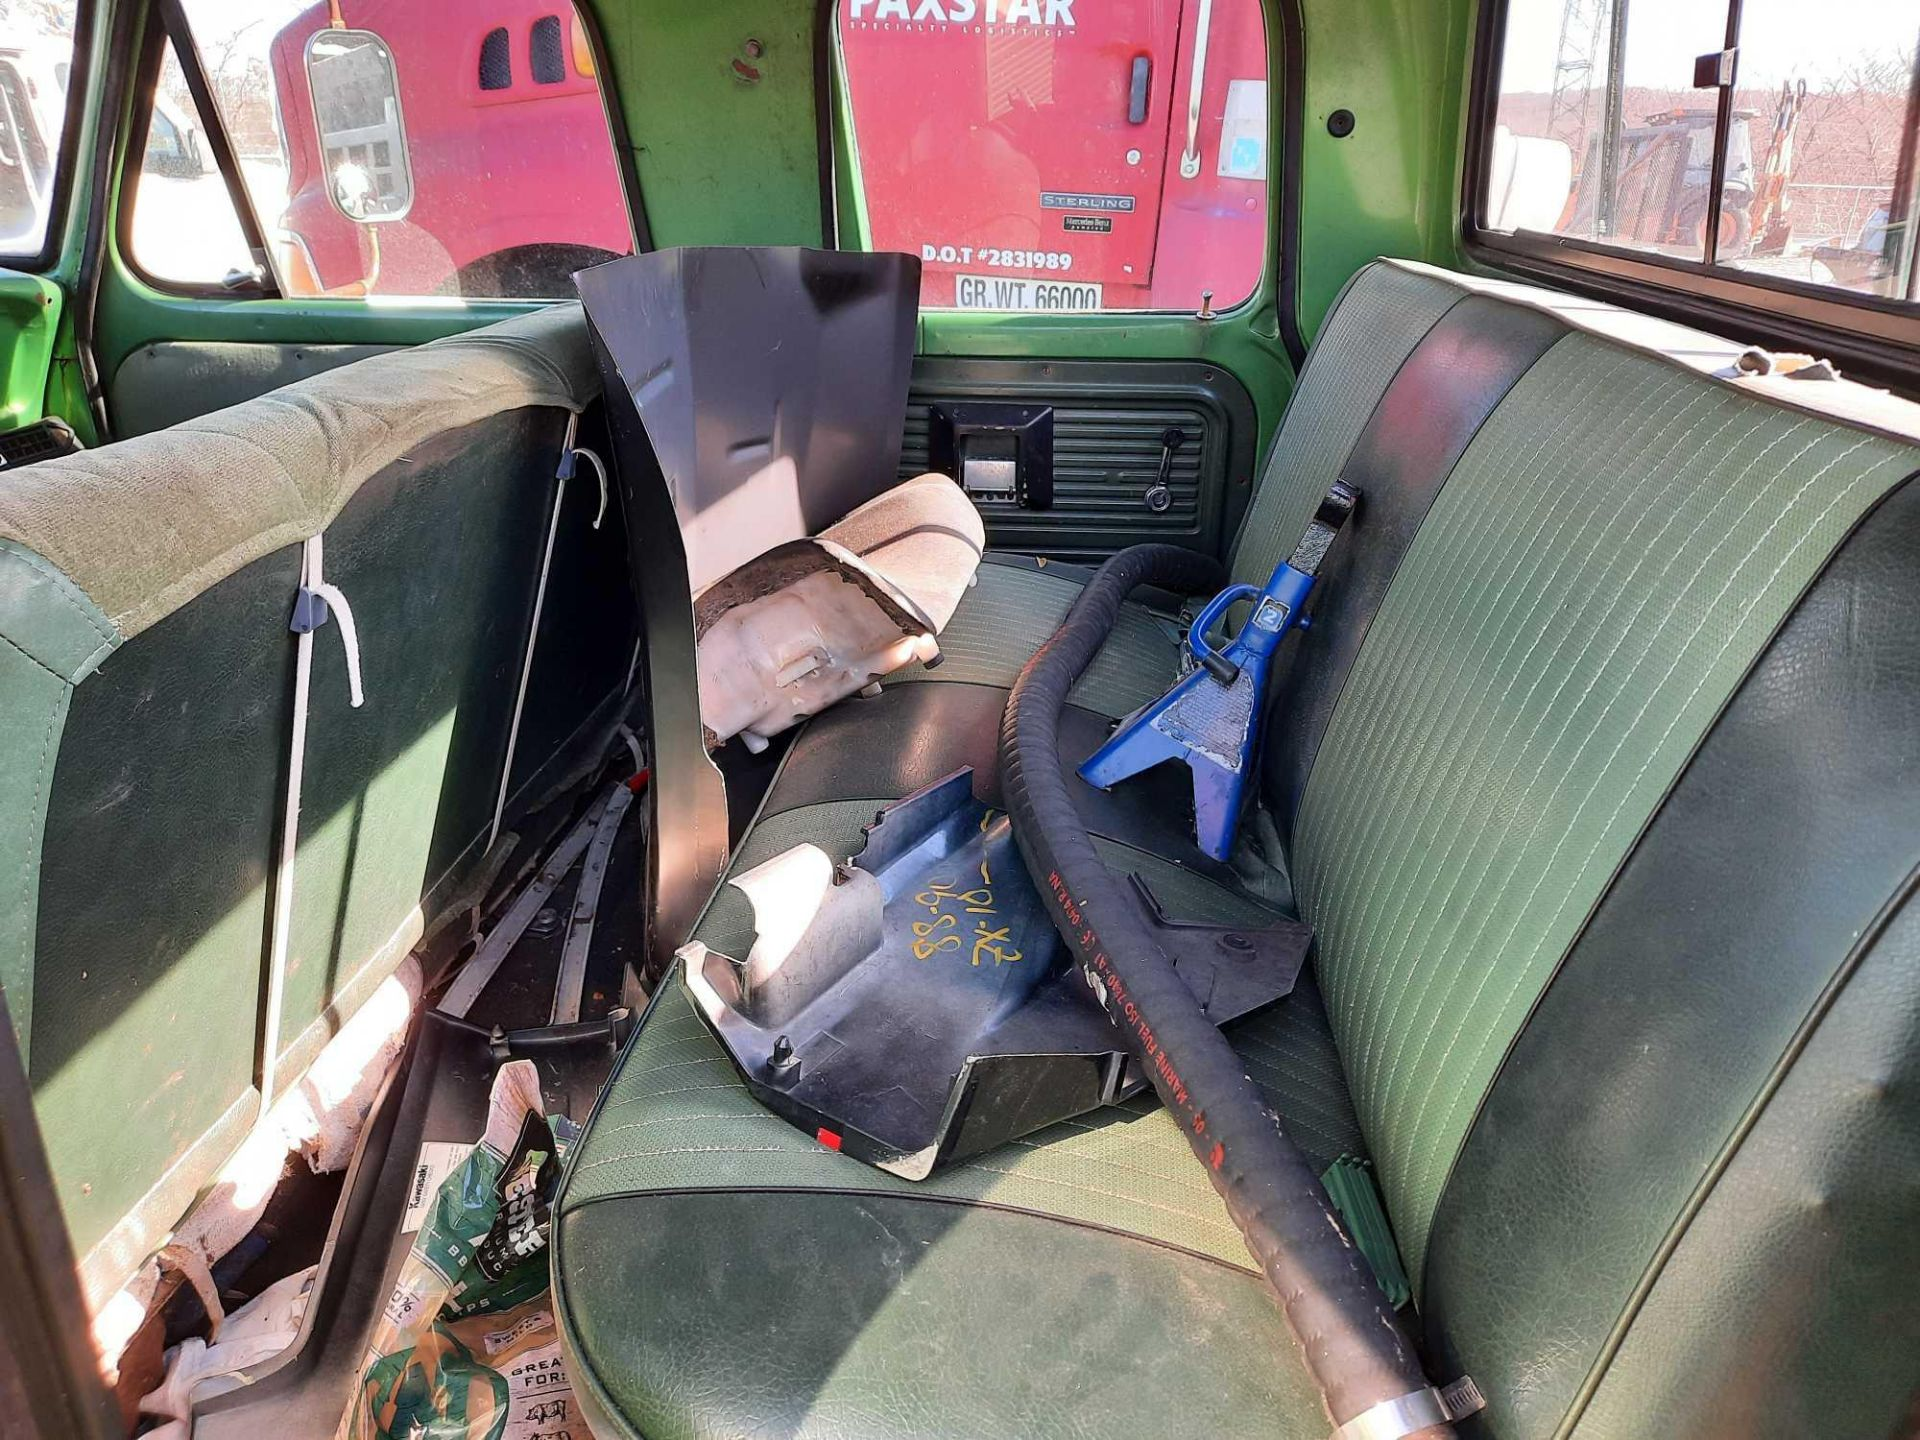 1972 FORD CREW CAB 350 PICK UP TRUCK (INOPERABLE) - Image 9 of 15